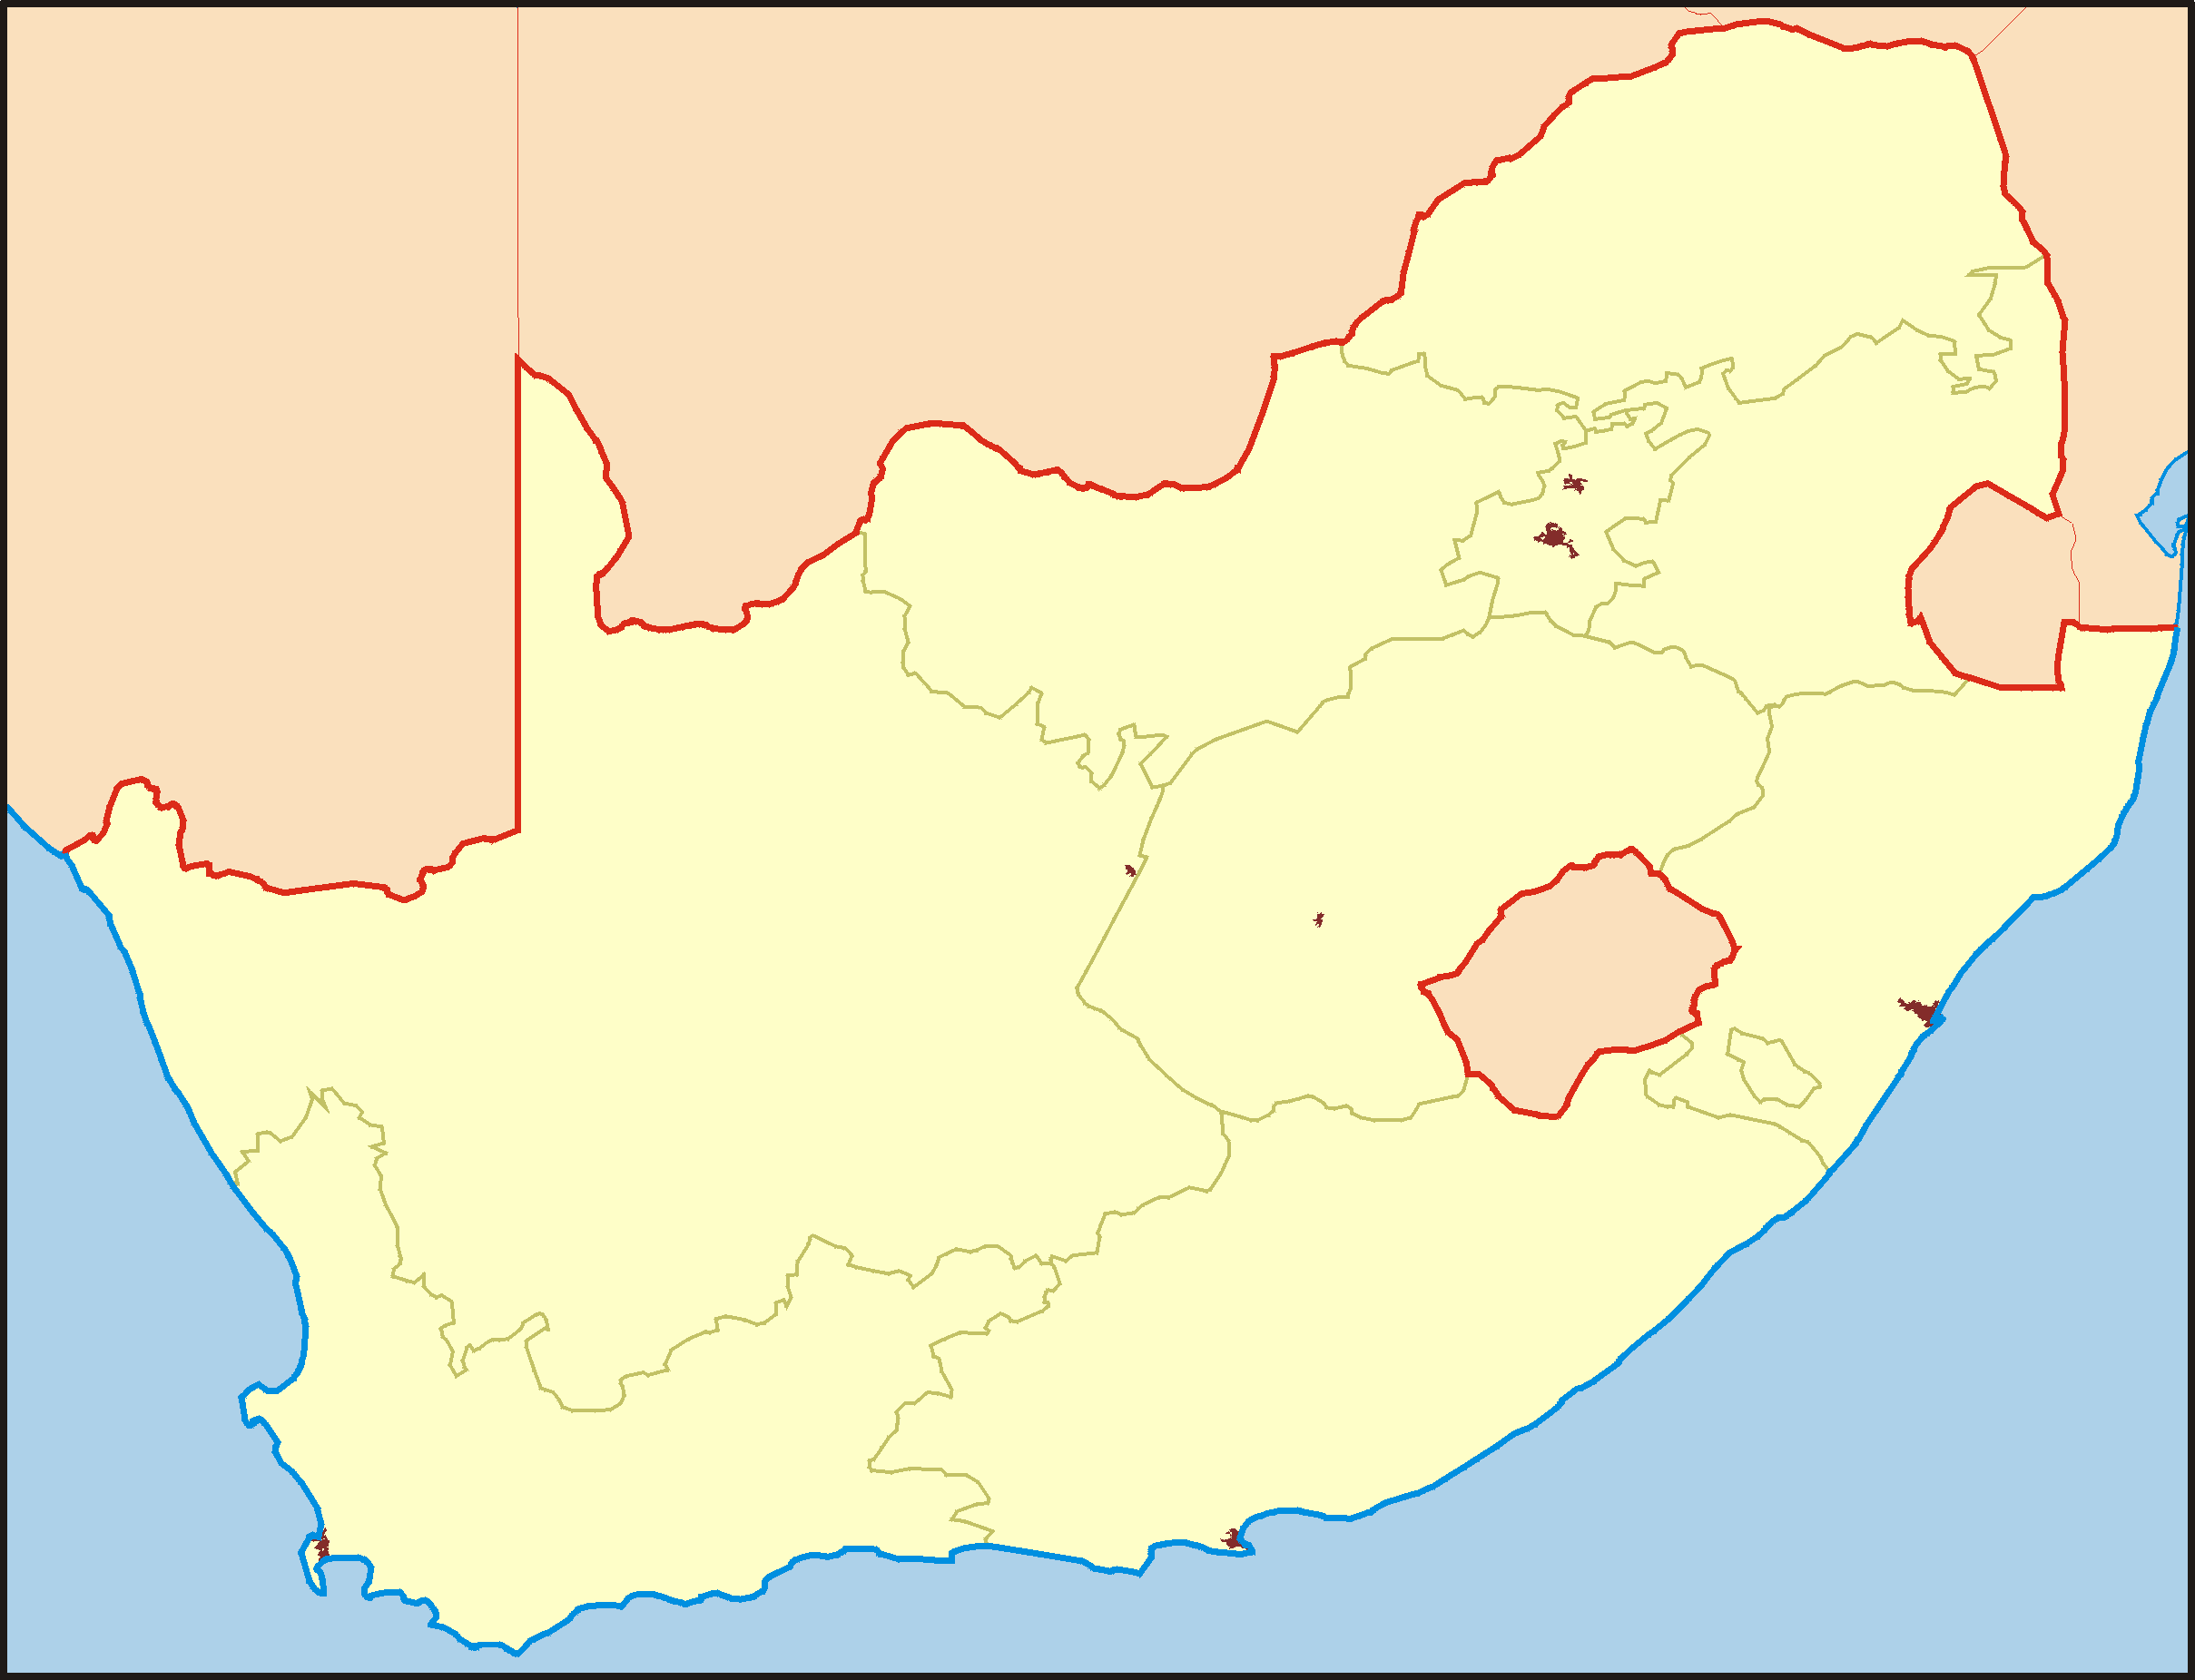 South Africa Ocation Mapsofnet - Blank map of south africa